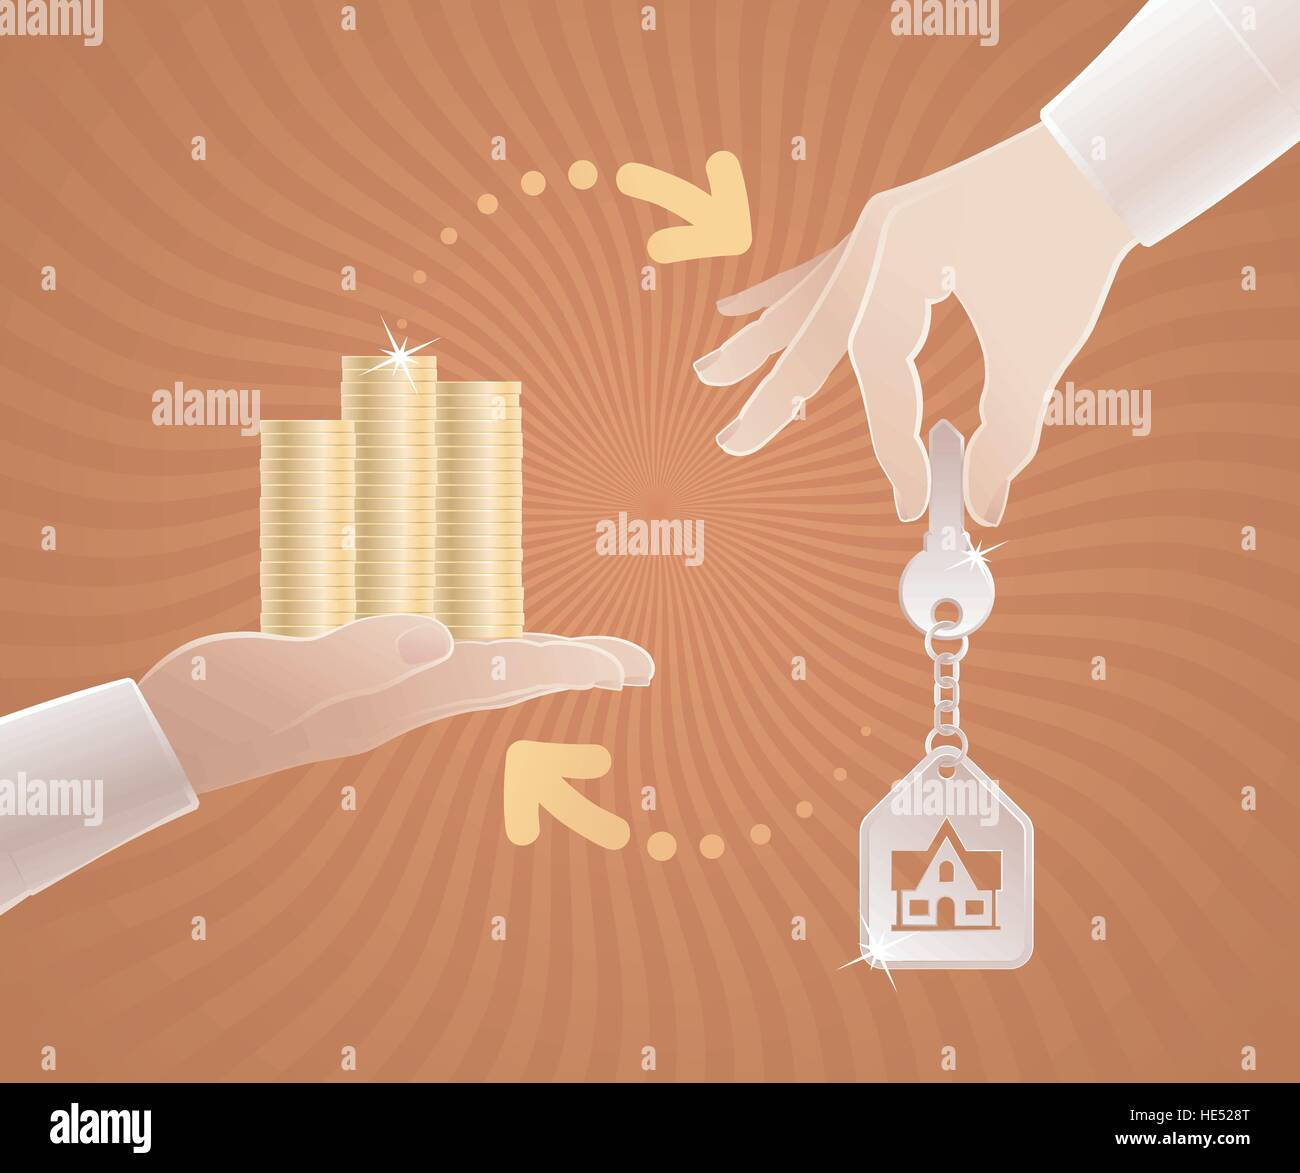 Real Estate Market - Stock Vector